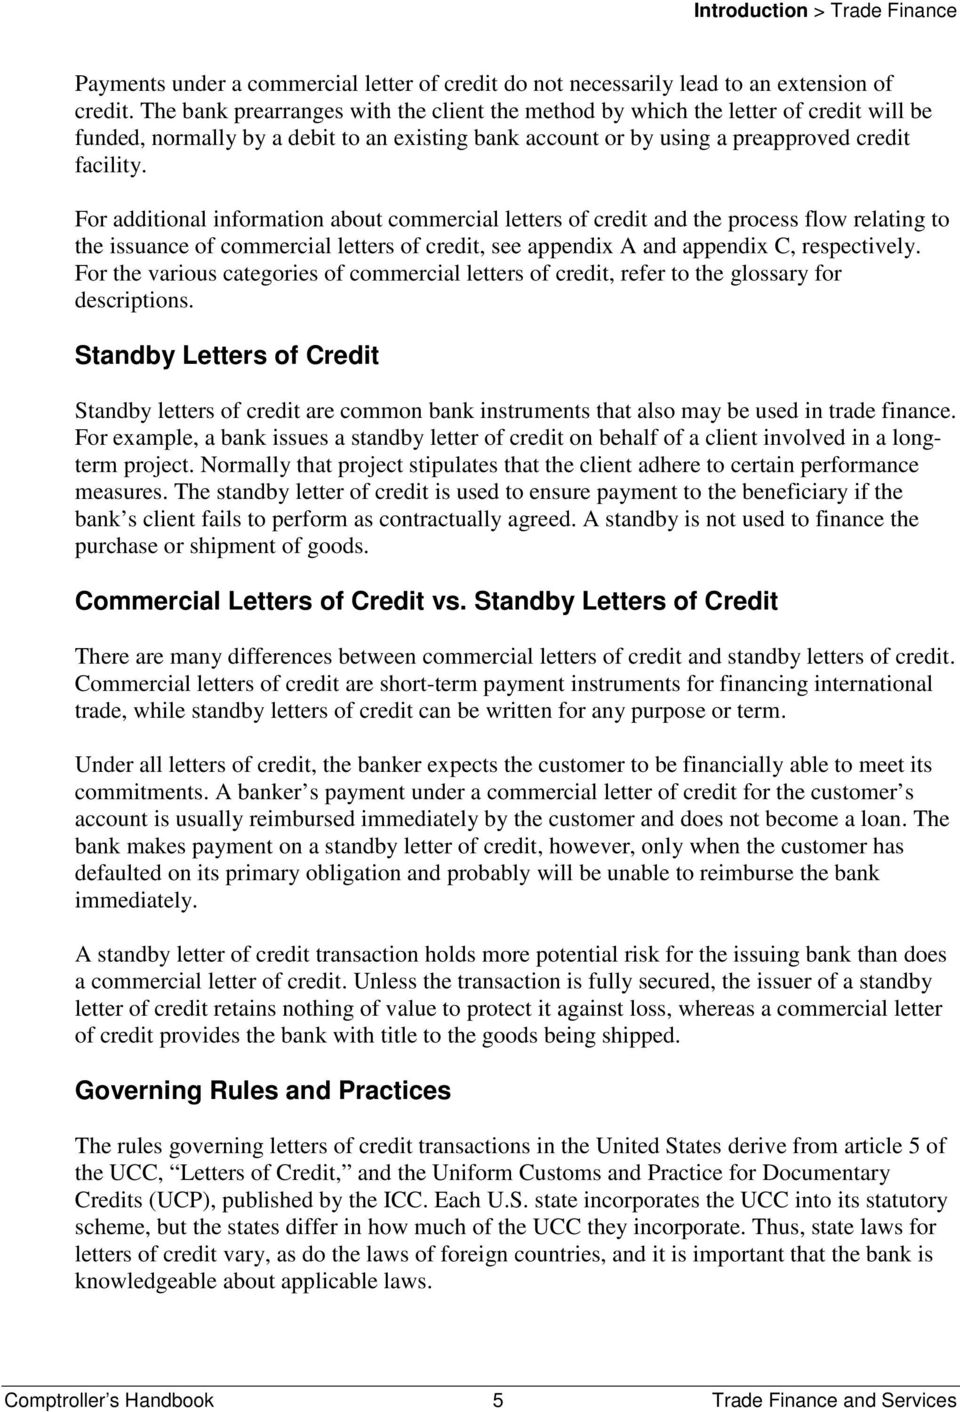 For additional information about commercial letters of credit and the process flow relating to the issuance of commercial letters of credit, see appendix A and appendix C, respectively.